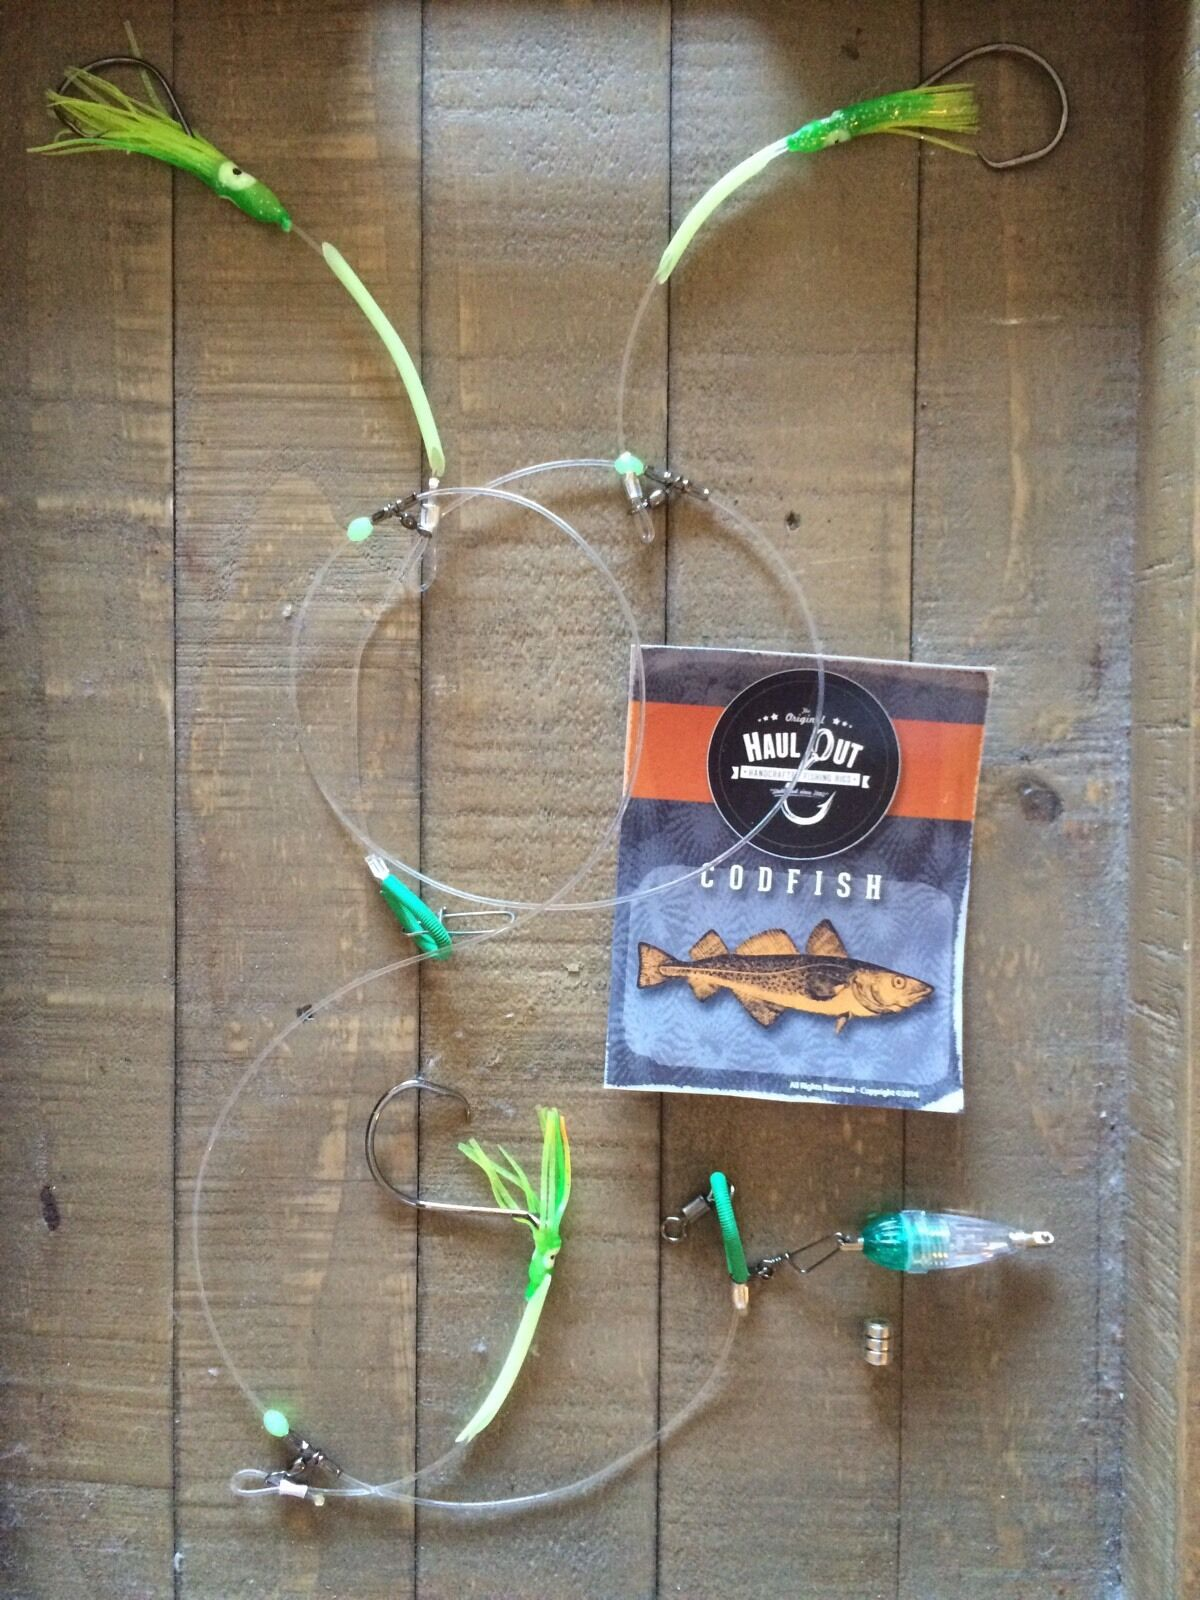 10 CODFISH GROUPER RED SNAPPER FISHING RIG deep drop light and glow 5 hooks    T